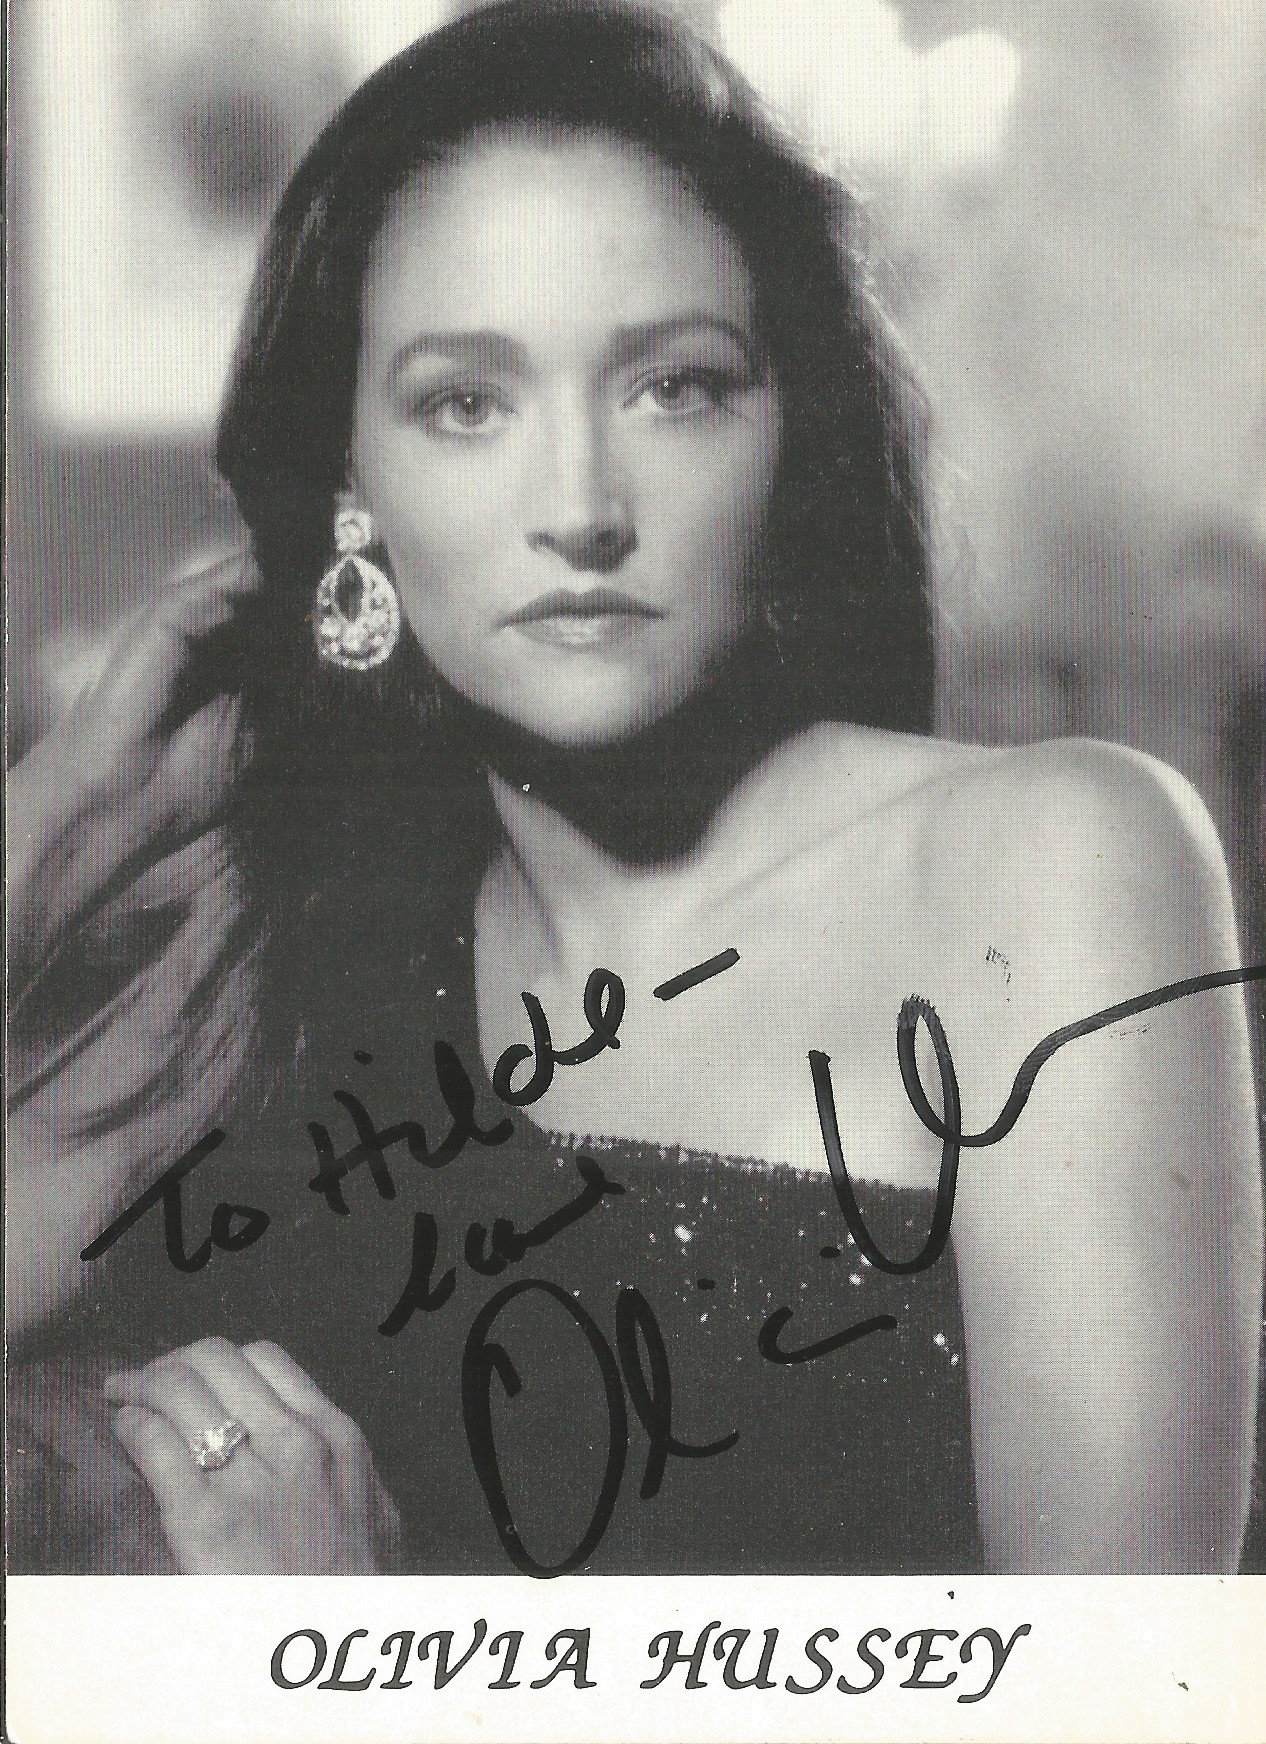 Olivia Hussey signed 6x4 black and white photo. Good condition. All autographs come with a